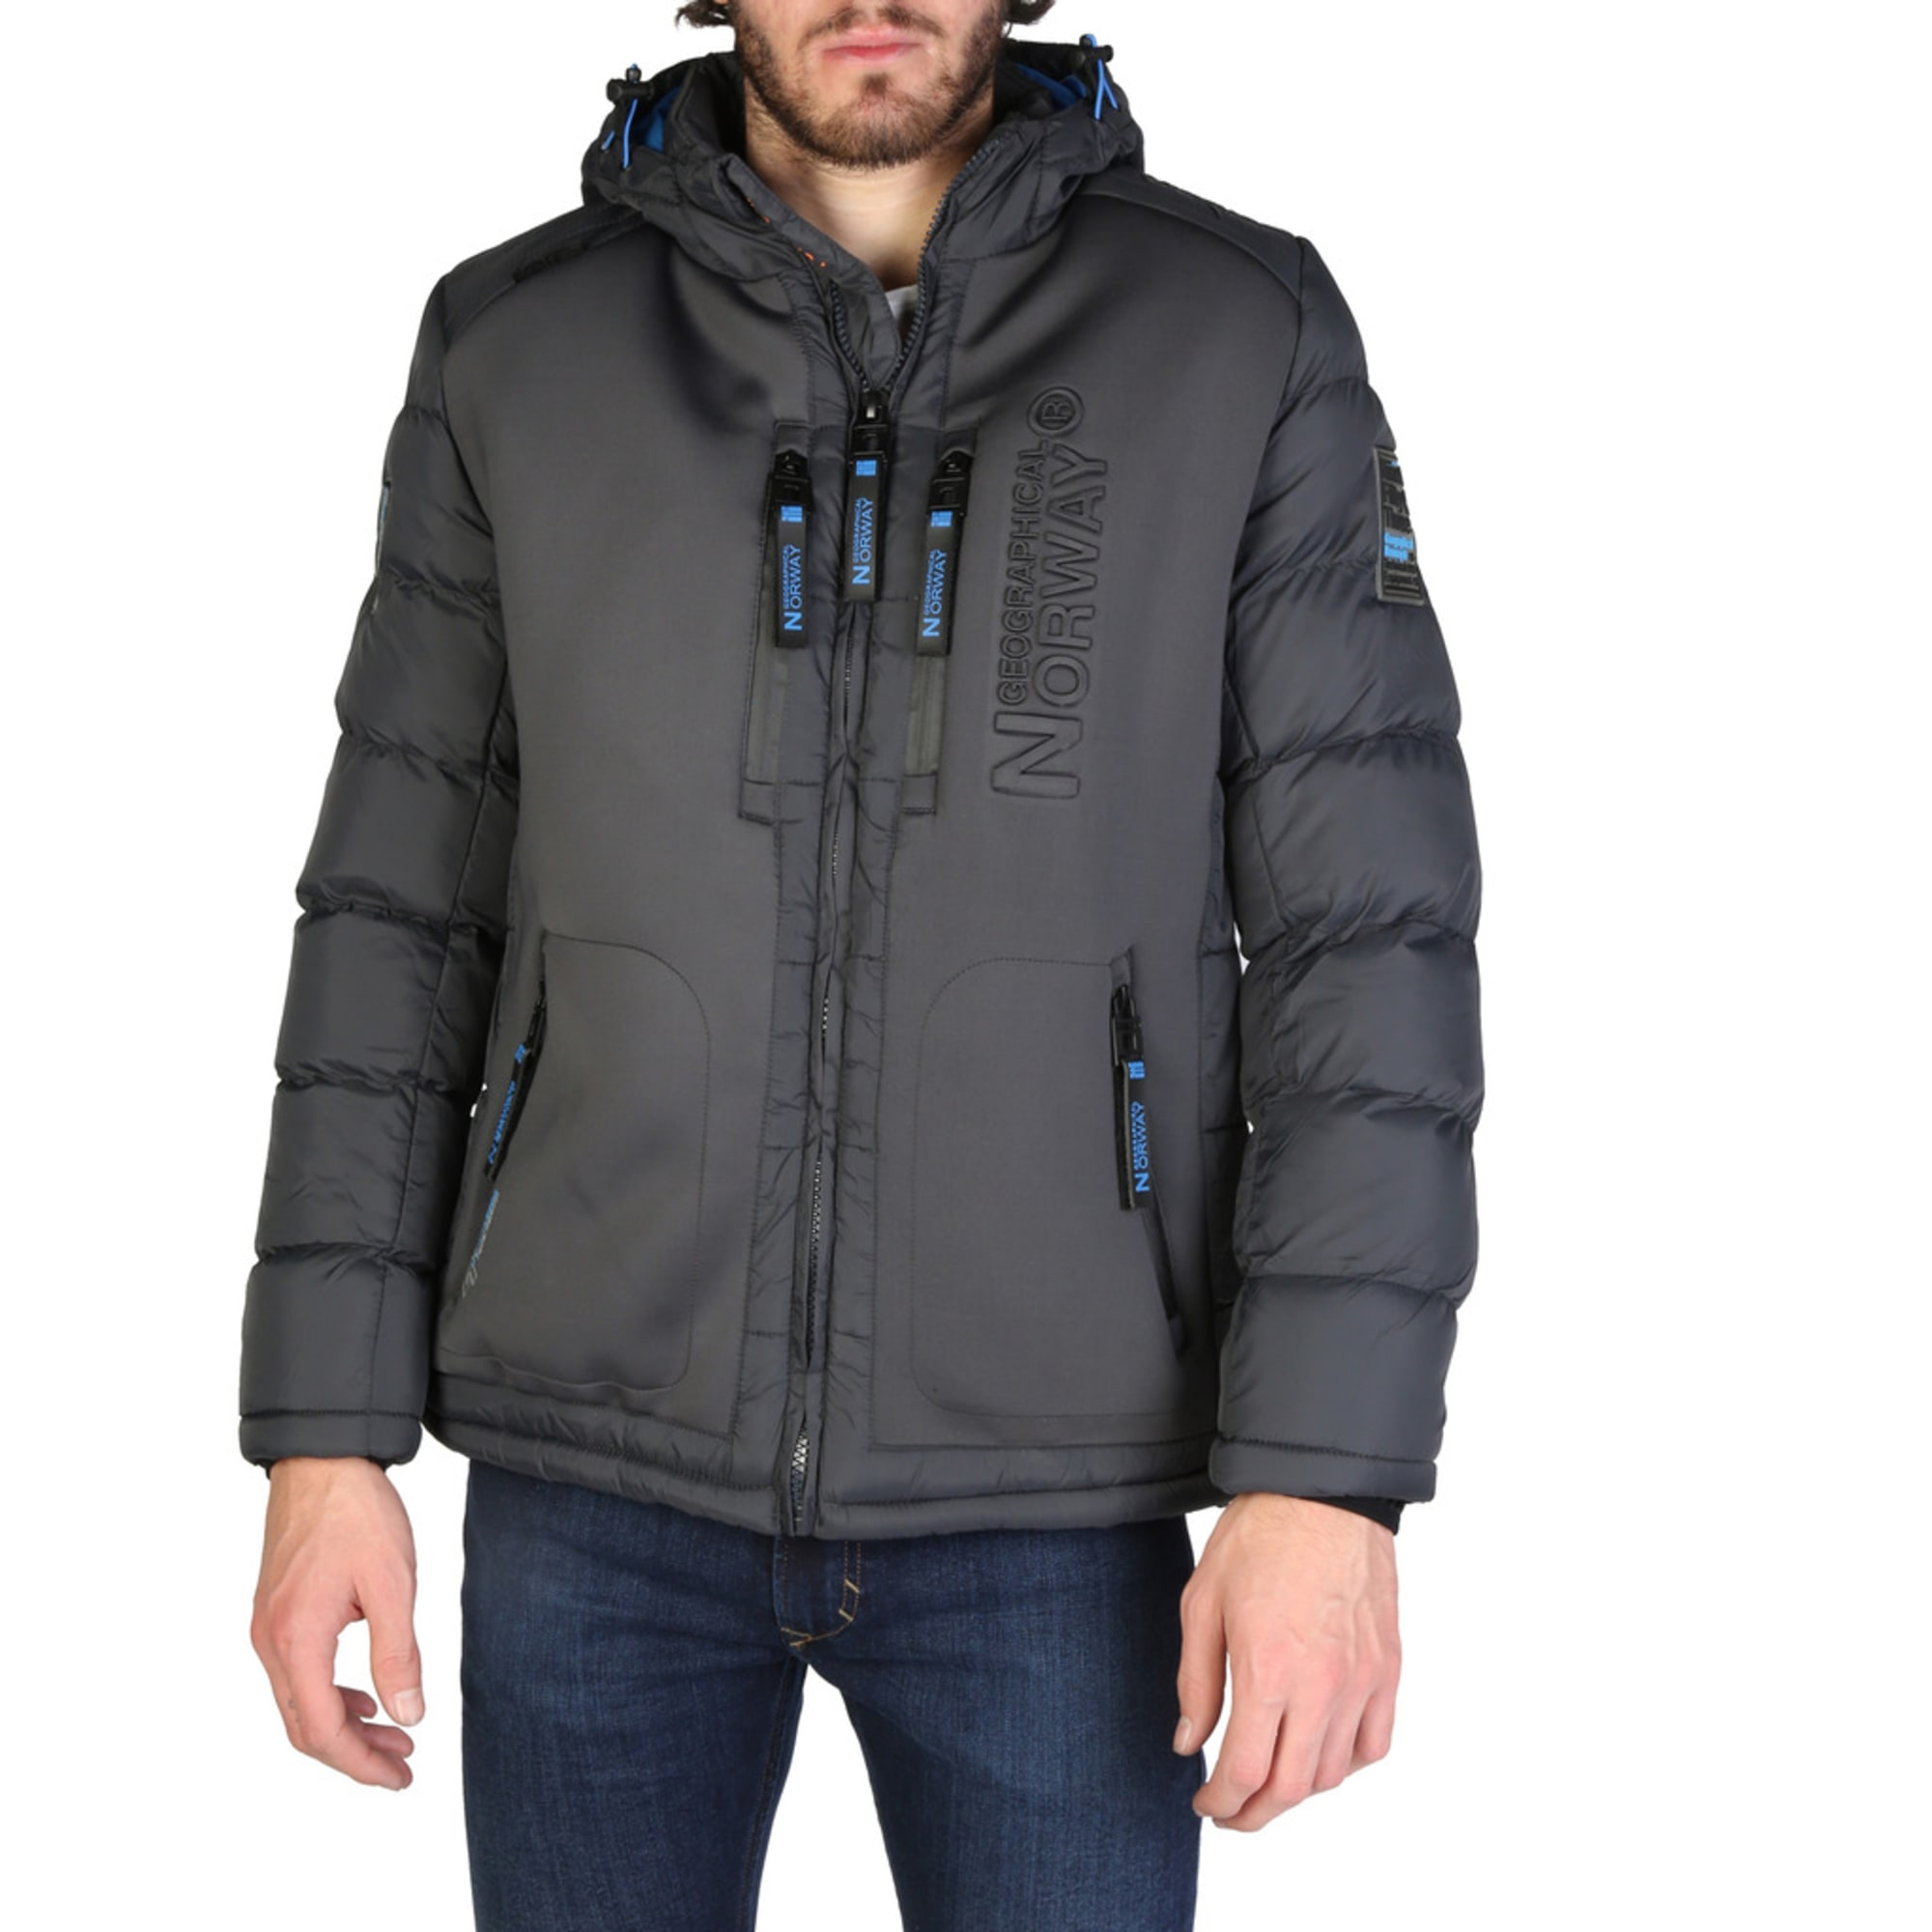 Norway Geographical 44 s 8217758 Gris Blouson x5g8wOx